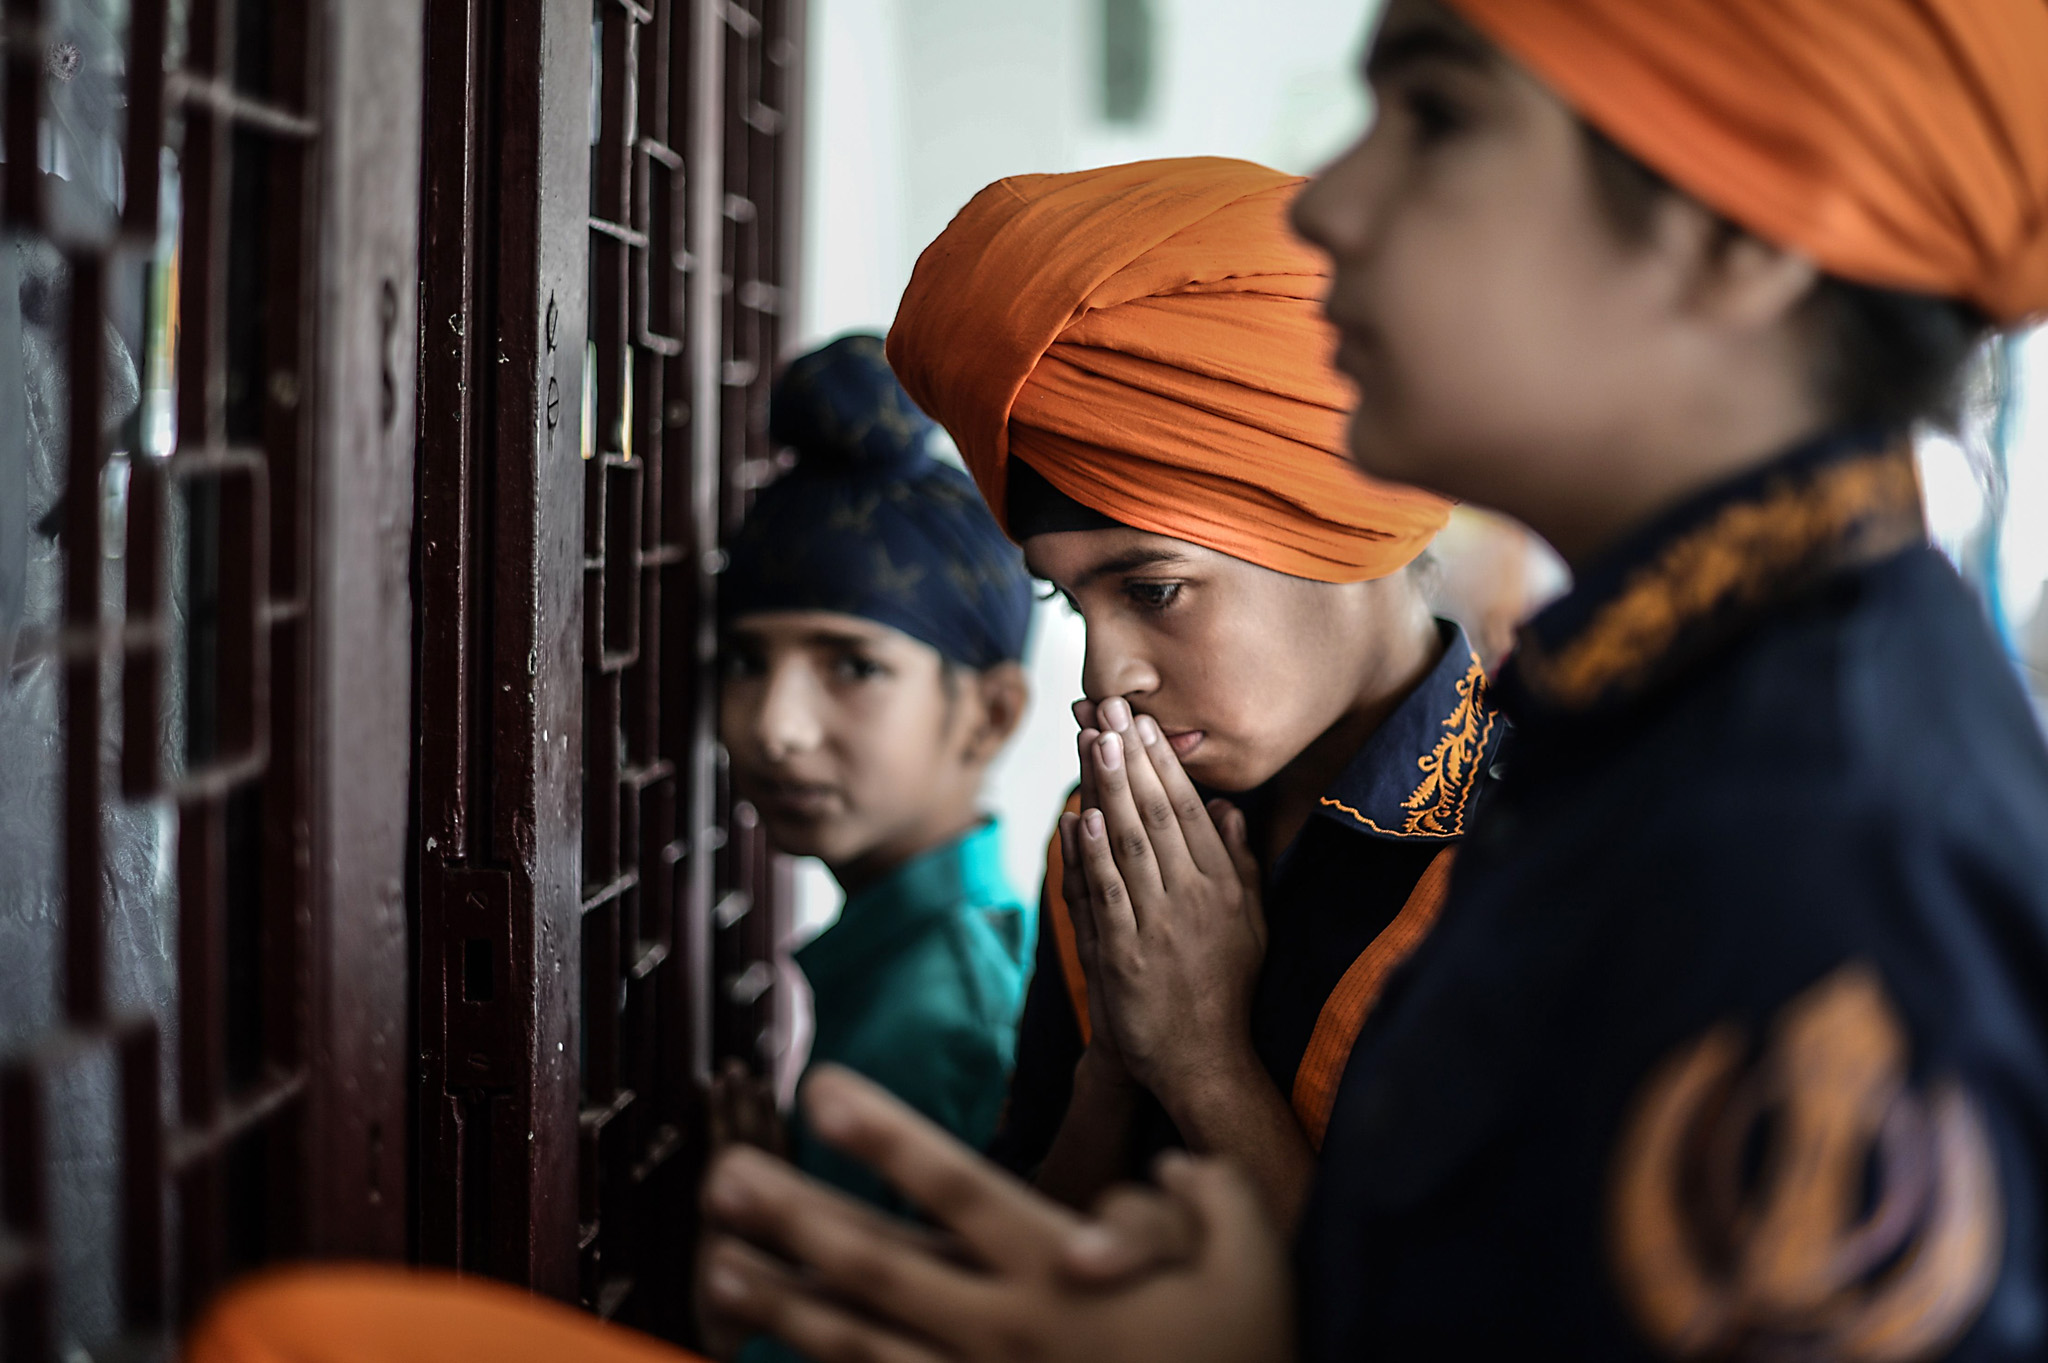 Ethnic Malaysian Sikhs perform prayers t...Ethnic Malaysian Sikhs perform prayers to celebrate the Vaisakhi Festival, or the Sikh New Year Festival, at Gurdwara Sahib temple in Kuala Lumpur on April 14, 2016.  The Vaisakhi Festival is the most important event in the Sikh calendar and celebrates the birth of Khalsa. / AFP PHOTO / MOHD RASFANMOHD RASFAN/AFP/Getty Images